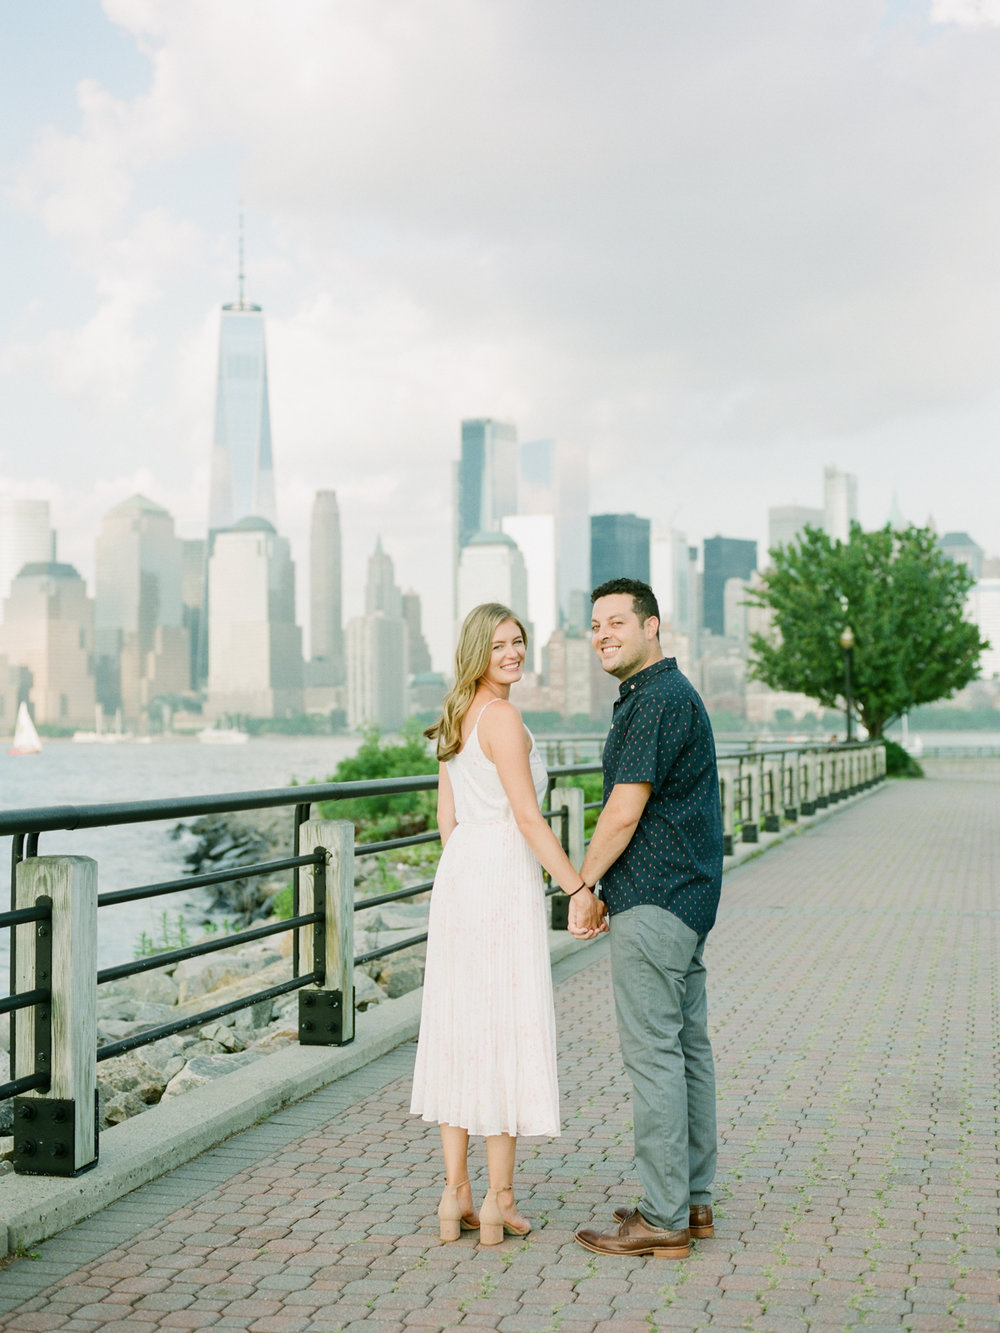 NYC-skyline-engagement-session-by-Tanya Isaeva-8.jpg